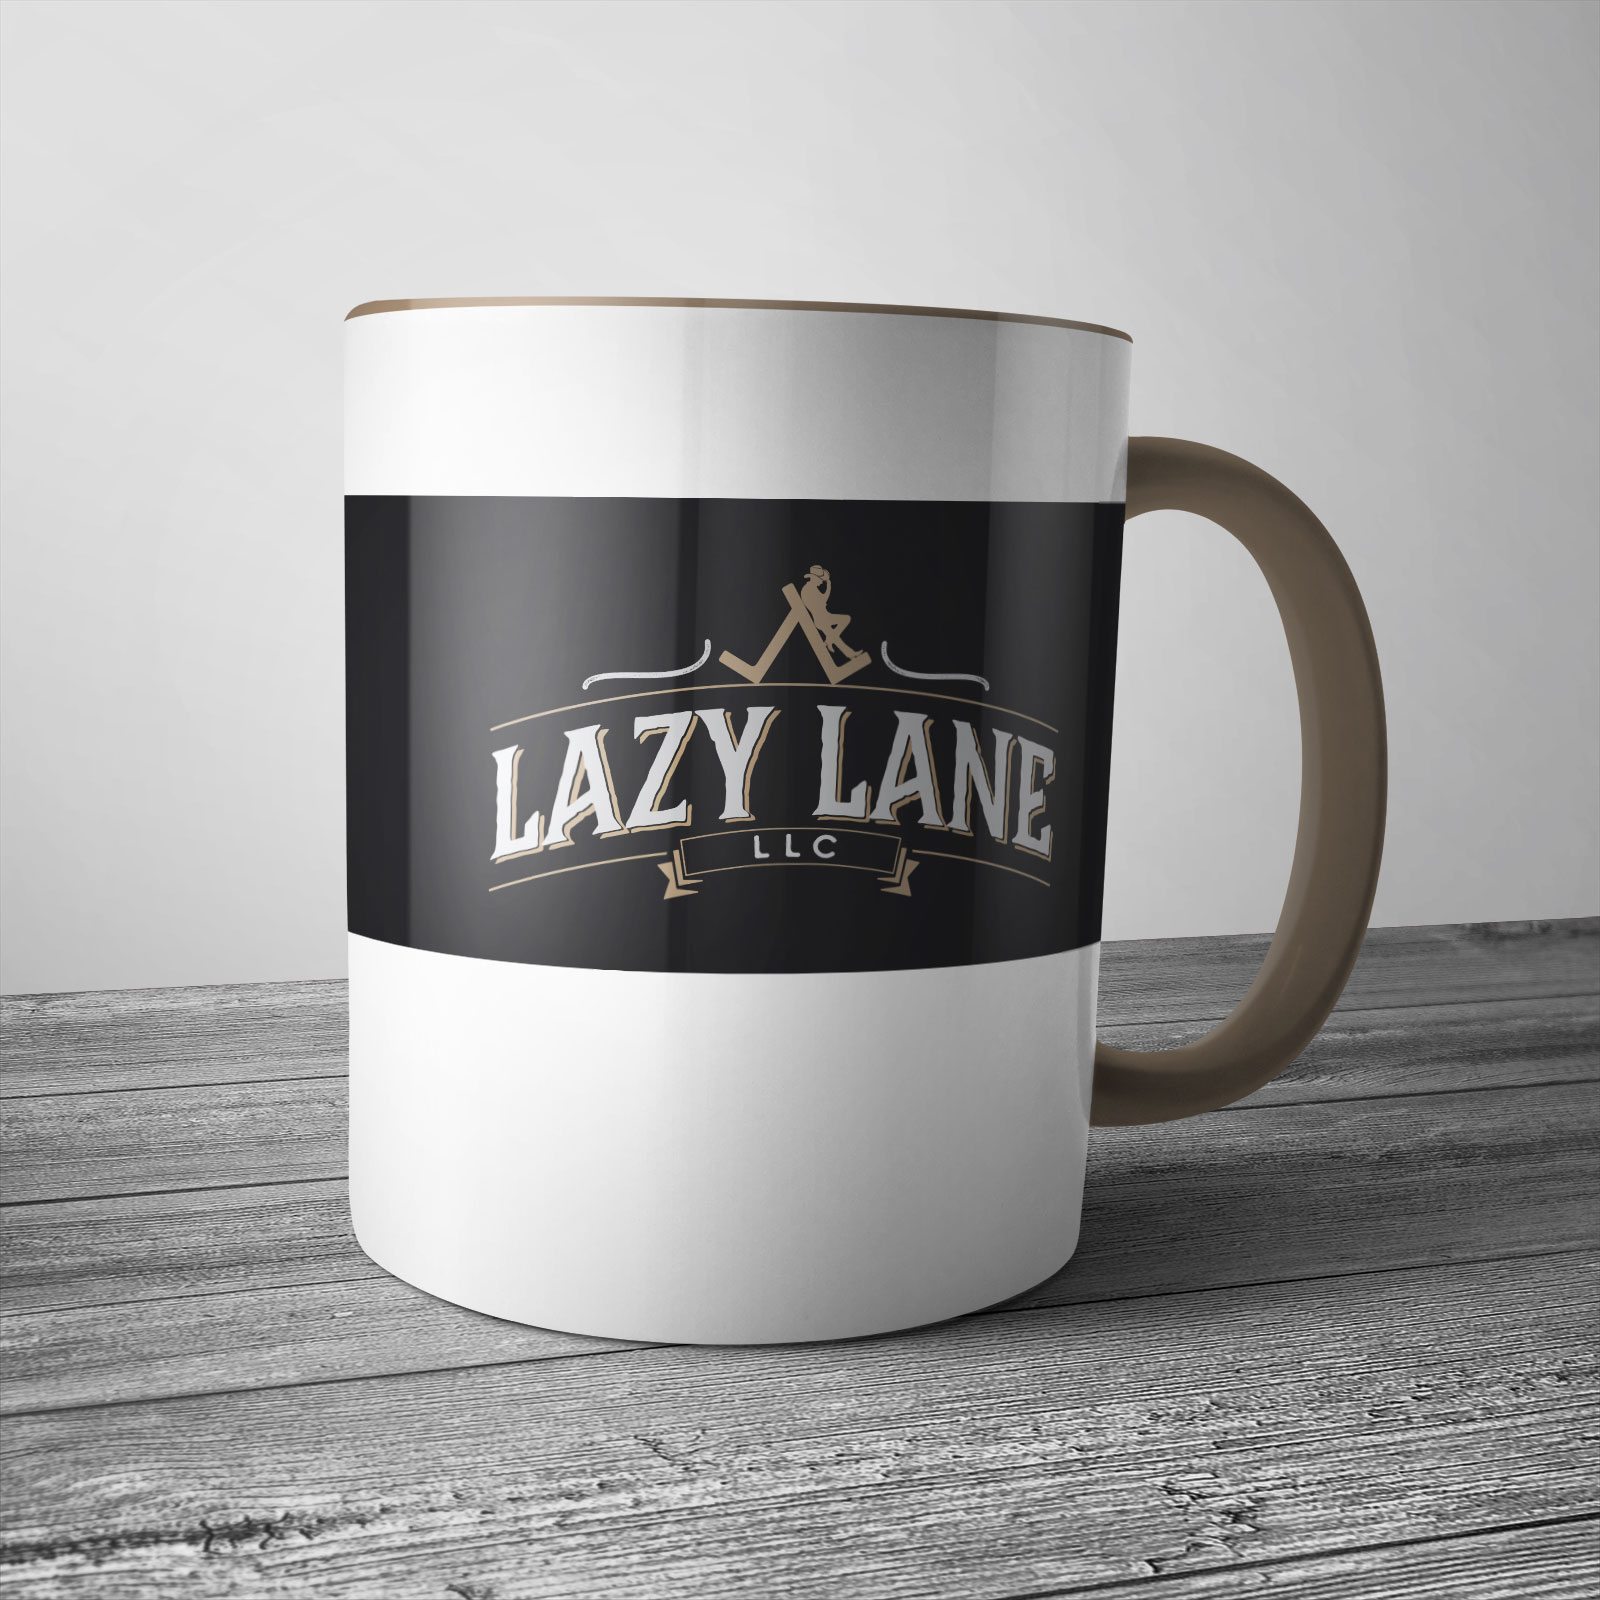 "Lazy Lane logo design,0.6c2.2,0.3,4.7,0.6,7.4,0.8c2.7,0.3,5.5,0.6,8.5,1.1c3.9,0.6,6.5,1.1,7.8,1.4c1.3,0.3,1.9,0.8,1.9,1.4 c0,0.6-0.5,1.4-1.4,2.2c-0.9,0.9-1.9,1.9-3,2.9c-0.9,0.8-1.3,1.4-1.5,1.6c-0.1,0.2-0.3,0.9-0.6,2.1c0,0.2,0,0.4-0.1,0.5 c-0.1,0.1-0.1,0.3-0.1,0.5c-0.1,0.5-0.2,1-0.2,1.6c-0.1,1.3,0.1,2.6,0.6,3.7c0.5,1.2,0.9,2.8,1.1,4.9c0.1,1.4,0.3,2.4,0.6,3.2 c0.2,0.8,0.5,1.5,0.7,2.3c0.2,0.8,0.5,1.7,0.8,2.7c0.3,1,0.6,2.3,0.8,4c0.2,1.6,0.6,3.4,1.1,5.4c0.5,2,1,4,1.7,6 c0.6,2,1.2,4,1.7,5.7c0.5,1.8,0.9,3.3,1.1,4.6c0.1,1.2,0.5,3,1,5.3c0.5,2.3,1.1,4.6,1.7,7c0.6,2.4,1.2,4.6,1.7,6.8 c0.5,2.2,0.8,3.7,0.9,4.5c0.5,1.9,0.8,3.5,1,4.8c0.2,1.3,0.8,3.1,1.7,5.3c1.1,2.3,1.7,4.4,1.7,6.5c0,2.1,0.4,4.3,1.1,6.8 c0.4,1.2,0.8,2.7,1.2,4.5c0.4,1.8,0.8,3.7,1.2,5.5c0.4,1.8,0.7,3.6,1,5.2c0.3,1.6,0.6,2.9,0.8,3.8c0.5,1.8,1.3,3.7,2.5,5.7 c1.2,2,2.3,3.9,3.4,5.8c1,1.5,2.1,3.1,3.3,4.8c1.2,1.7,1.8,2.9,1.8,3.6c0,0.5-0.2,0.7-0.7,0.6c-1.3,0-3.8-0.3-7.2-1 c-3.5-0.6-6.9-1.1-10.2-1.4c-1.4-0.2-2.8-0.5-4.2-0.8c-1.5-0.3-2.9-0.6-4.2-0.8c-0.6-0.1-1.2-0.2-1.8-0.3c-0.6-0.1-1.2-0.1-1.8-0.1 c-0.6,0-1.2,0-1.8,0c-0.6,0-1.2-0.1-1.7-0.2c-2.1-0.3-3-0.8-2.8-1.5c0-0.2,0.1-0.5,0.4-0.7c0.2-0.3,0.7-0.9,1.5-1.7 c0.7-0.8,1.5-1.6,2.4-2.5c0.9-0.8,1.6-1.7,2.3-2.5c0.7-0.8,1-1.3,1-1.6c0-0.6-0.1-1.6-0.3-3.1c-0.2-1.4-0.6-3.5-1.2-6.1 c-0.2-1.3-0.6-2.7-1-4.5c-0.4-1.7-0.9-3.4-1.3-5c-0.4-1.6-0.9-3.2-1.3-4.6c-0.4-1.4-0.8-2.6-1-3.4c-0.2-1-0.7-1.9-1.4-2.8 c-0.7-0.8-1.4-1.3-2.3-1.4c-0.7-0.1-1.5,0.1-2.2,0.8c-1.1,1.1-2.6,1.9-4.4,2.5c-1.8,0.6-3.3,1.3-4.2,1.9c-0.5,0.3-1.1,0.4-1.9,0.4 c-0.8,0-1.6-0.1-2.5-0.2c-0.9-0.1-1.6,0-2.3,0.1c-0.7,0.2-1.1,0.5-1.4,1.1c-0.7,1.2-2.1,2.1-4.1,2.7c-2,0.5-4.3,1.5-7,2.9 c-1.4,0.7-2.5,1.2-3.3,1.4c-0.9,0.3-1.5,0.5-2,0.8c-0.5,0.2-0.9,0.6-1.1,1.1c-0.2,0.5-0.4,1.1-0.6,1.9c-0.2,0.9-0.4,1.7-0.5,2.3 c-0.1,0.6-0.1,1.2-0.1,1.8c0,0.9,0.2,1.7,0.6,2.6c0.2,1,0.6,2.1,0.9,3.2c0.4,1.1,1.3,2.6,2.8,4.3c0.7,0.9,1.4,1.8,1.9,2.5 c0.6,0.7,0.8,1.3,0.6,1.6c0,0.2-0.2,0.4-0.6,0.5c-0.2,0.1-0.7,0.1-1.3,0c-0.6-0.1-1.3-0.2-2-0.2c-1.5-0.2-3.2-0.4-5.3-0.7 c-2-0.3-4-0.5-5.8-0.7c-2.1-0.2-4.4-0.4-6.8-0.4c-2.5-0.1-4.6-0.2-6.5-0.4c-0.5,0-0.9-0.1-1.3-0.2c-0.4-0.1-0.7-0.2-1.1-0.2 c-1-0.2-1.9-0.4-2.6-0.7c-0.7-0.2-1-0.6-0.9-1.1c0-0.5,0.4-1.1,1.1-1.7c1.2-1.2,2.5-2.7,3.7-4.3c1.2-1.6,2.4-3.1,3.5-4.3 c0.9-1.3,1.3-2.9,1.2-4.8c-0.1-2,0.3-3.7,1.2-5.4c0.7-1.6,1.3-3.8,1.8-6.6c0.4-2.8,1-6.2,1.8-10.2c0.4-2,1-4.4,1.8-7 c0.8-2.7,1.6-5.3,2.3-7.8c0.7-2.5,1.4-4.8,2-6.9c0.6-2.1,1-3.5,1.1-4.4c0.1-0.8,0.3-1.9,0.6-3.2c0.2-1.3,0.5-2.7,0.8-4.1 c0.3-1.4,0.6-2.7,1-3.9c0.4-1.2,0.7-2,1.1-2.6c0.5-0.6,1-1.6,1.5-3.1c0.5-1.5,0.9-3.1,1.1-4.8c0.4-2,0.7-4.2,0.9-6.5 c1.6-6.3,2.9-11.2,3.8-14.7c0.9-3.5,1.6-6.2,2-7.9c0.4-1.7,0.7-2.8,0.8-3.3c0.1-0.5,0.2-0.8,0.2-1.1c0-1.3-0.2-2.6-0.6-3.8 c-0.4-1.2-1-2.2-1.8-3.1c-0.9-1-1.9-2.2-3.1-3.8C514.6,183.1,513.9,181.9,513.8,181z M535.9,210.7c-0.3,0-0.6,0.6-0.9,2 c-0.4,1.4-0.8,3-1.2,4.9c-0.4,1.9-0.9,3.9-1.4,5.9c-0.5,2.1-0.9,3.8-1.3,5.2c-0.7,2.8-1.3,5-1.7,6.5c-0.4,1.5-1,2.9-2,4.1 c-0.4,0.7-0.7,1.6-1,2.7c-0.3,1.1-0.6,2.3-0.8,3.6c-0.2,1.3-0.5,2.6-0.7,3.9c-0.2,1.3-0.6,2.5-0.9,3.5c-0.9,2.1-1.5,4.3-1.8,6.7 c-0.4,2.4-0.9,5.1-1.5,8.2c-0.4,2.8-0.6,5-0.8,6.7c-0.2,1.7-0.2,2.5-0.1,2.3c0.1-0.1,0.6-0.3,1.5-0.6c0.9-0.3,1.9-0.7,3-1 c1.2-0.3,2.4-0.7,3.6-1.2c1.2-0.4,2.2-0.9,3-1.4c0.7-0.5,1.8-1.1,3.2-1.9c1.4-0.7,2.9-1.4,4.6-2.1c1.7-0.7,3.3-1.3,4.8-1.8 c1.5-0.5,2.8-0.9,3.8-1.1c1.4-0.3,2-1.3,2-3.2c0.1-1.3-0.1-3.2-0.7-5.7c-0.6-2.5-1.2-4.9-1.8-7.3c-0.6-1.9-1-3.6-1.2-4.9 c-0.2-1.4-0.3-2.5-0.5-3.4c-0.1-0.9-0.3-1.7-0.5-2.4c-0.2-0.7-0.6-1.5-1.2-2.3c-1.8-2.9-2.8-6.3-2.8-10.1c-0.2-1.7-0.4-3.4-0.6-5 c-0.1-1.6-0.3-2.7-0.6-3.4c-0.2-0.4-0.5-1-0.7-1.7c-0.3-0.8-0.5-1.6-0.8-2.5c-0.3-0.9-0.6-1.7-1-2.3 C536.5,211.1,536.2,210.7,535.9,210.7z""/>"